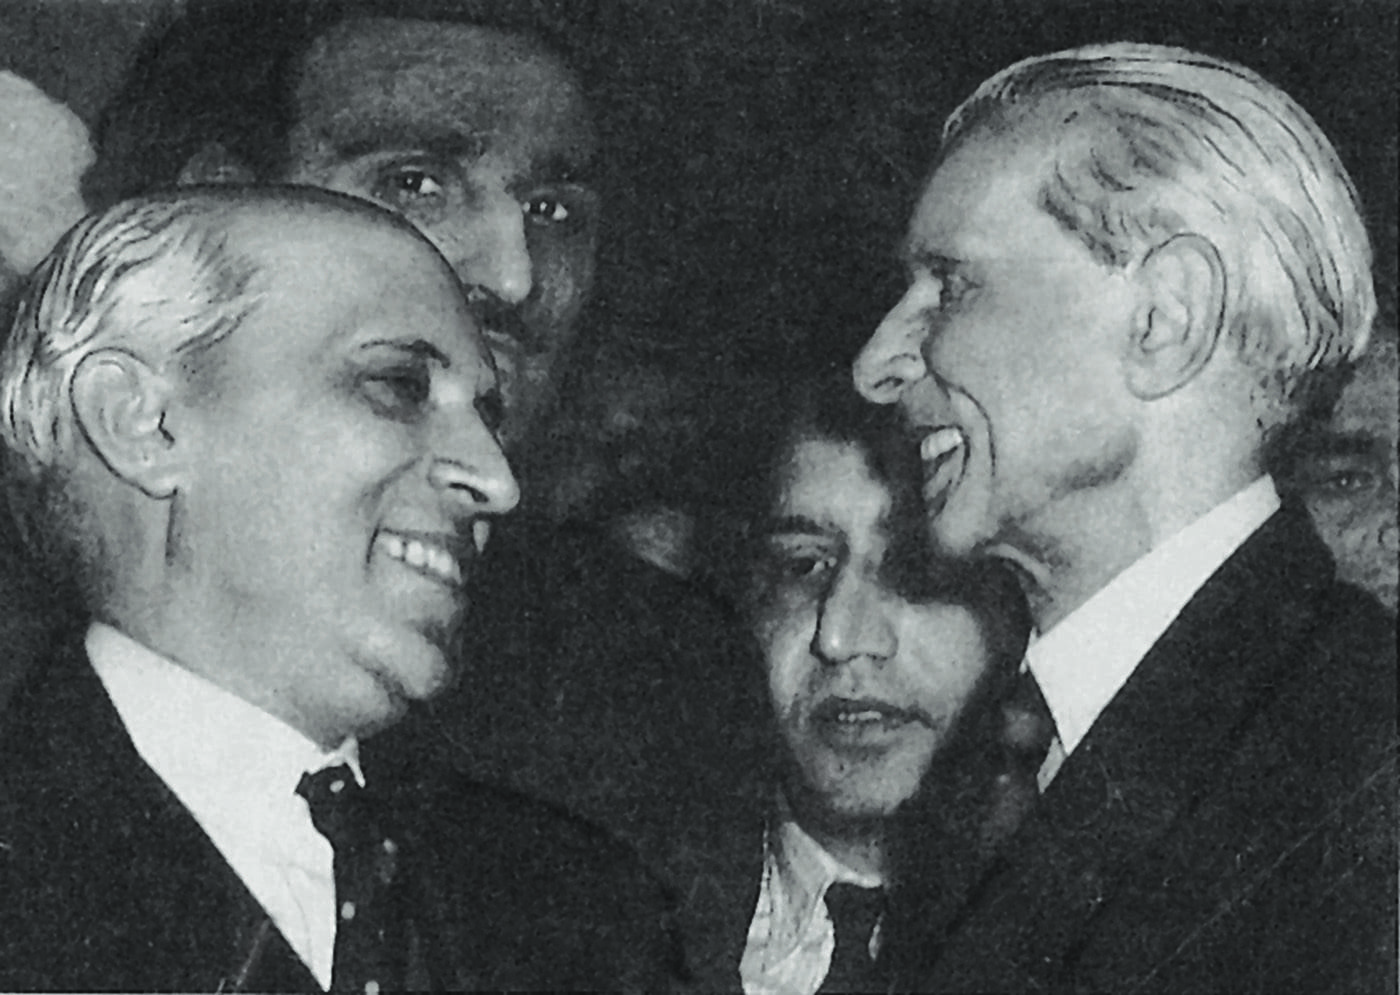 The Quaid-i-Azam, Mohammad Ali Jinnah and Jawaharlal Nehru caught smiling at each other at a reception at the India Office Library in London in December 1946. — Courtesy National Archives Islamabad